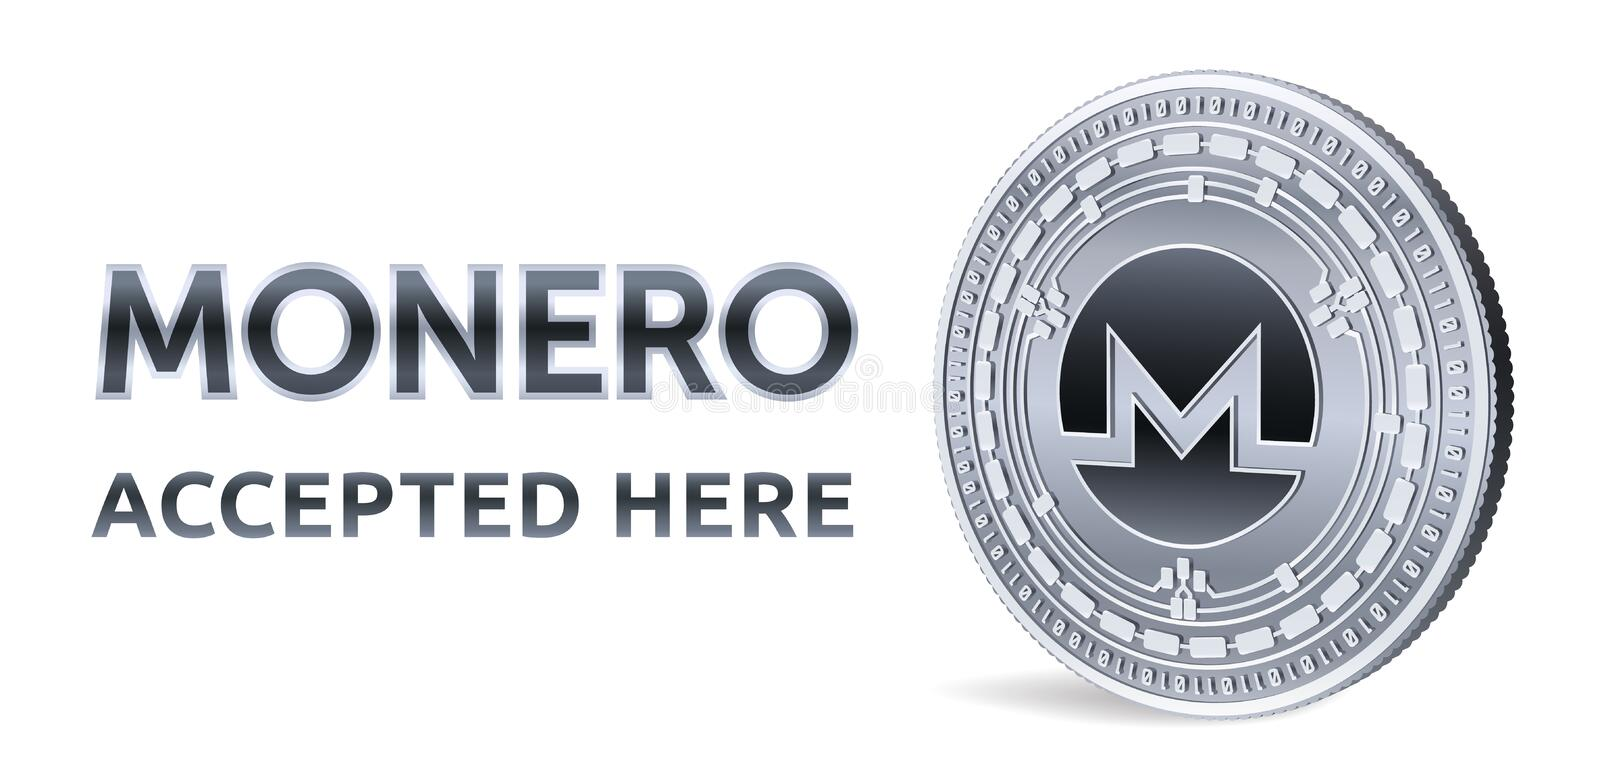 Monero. Accepted sign emblem. Crypto currency. Silver coin with Monero symbol isolated on white background. 3D isometric Physical vector illustration